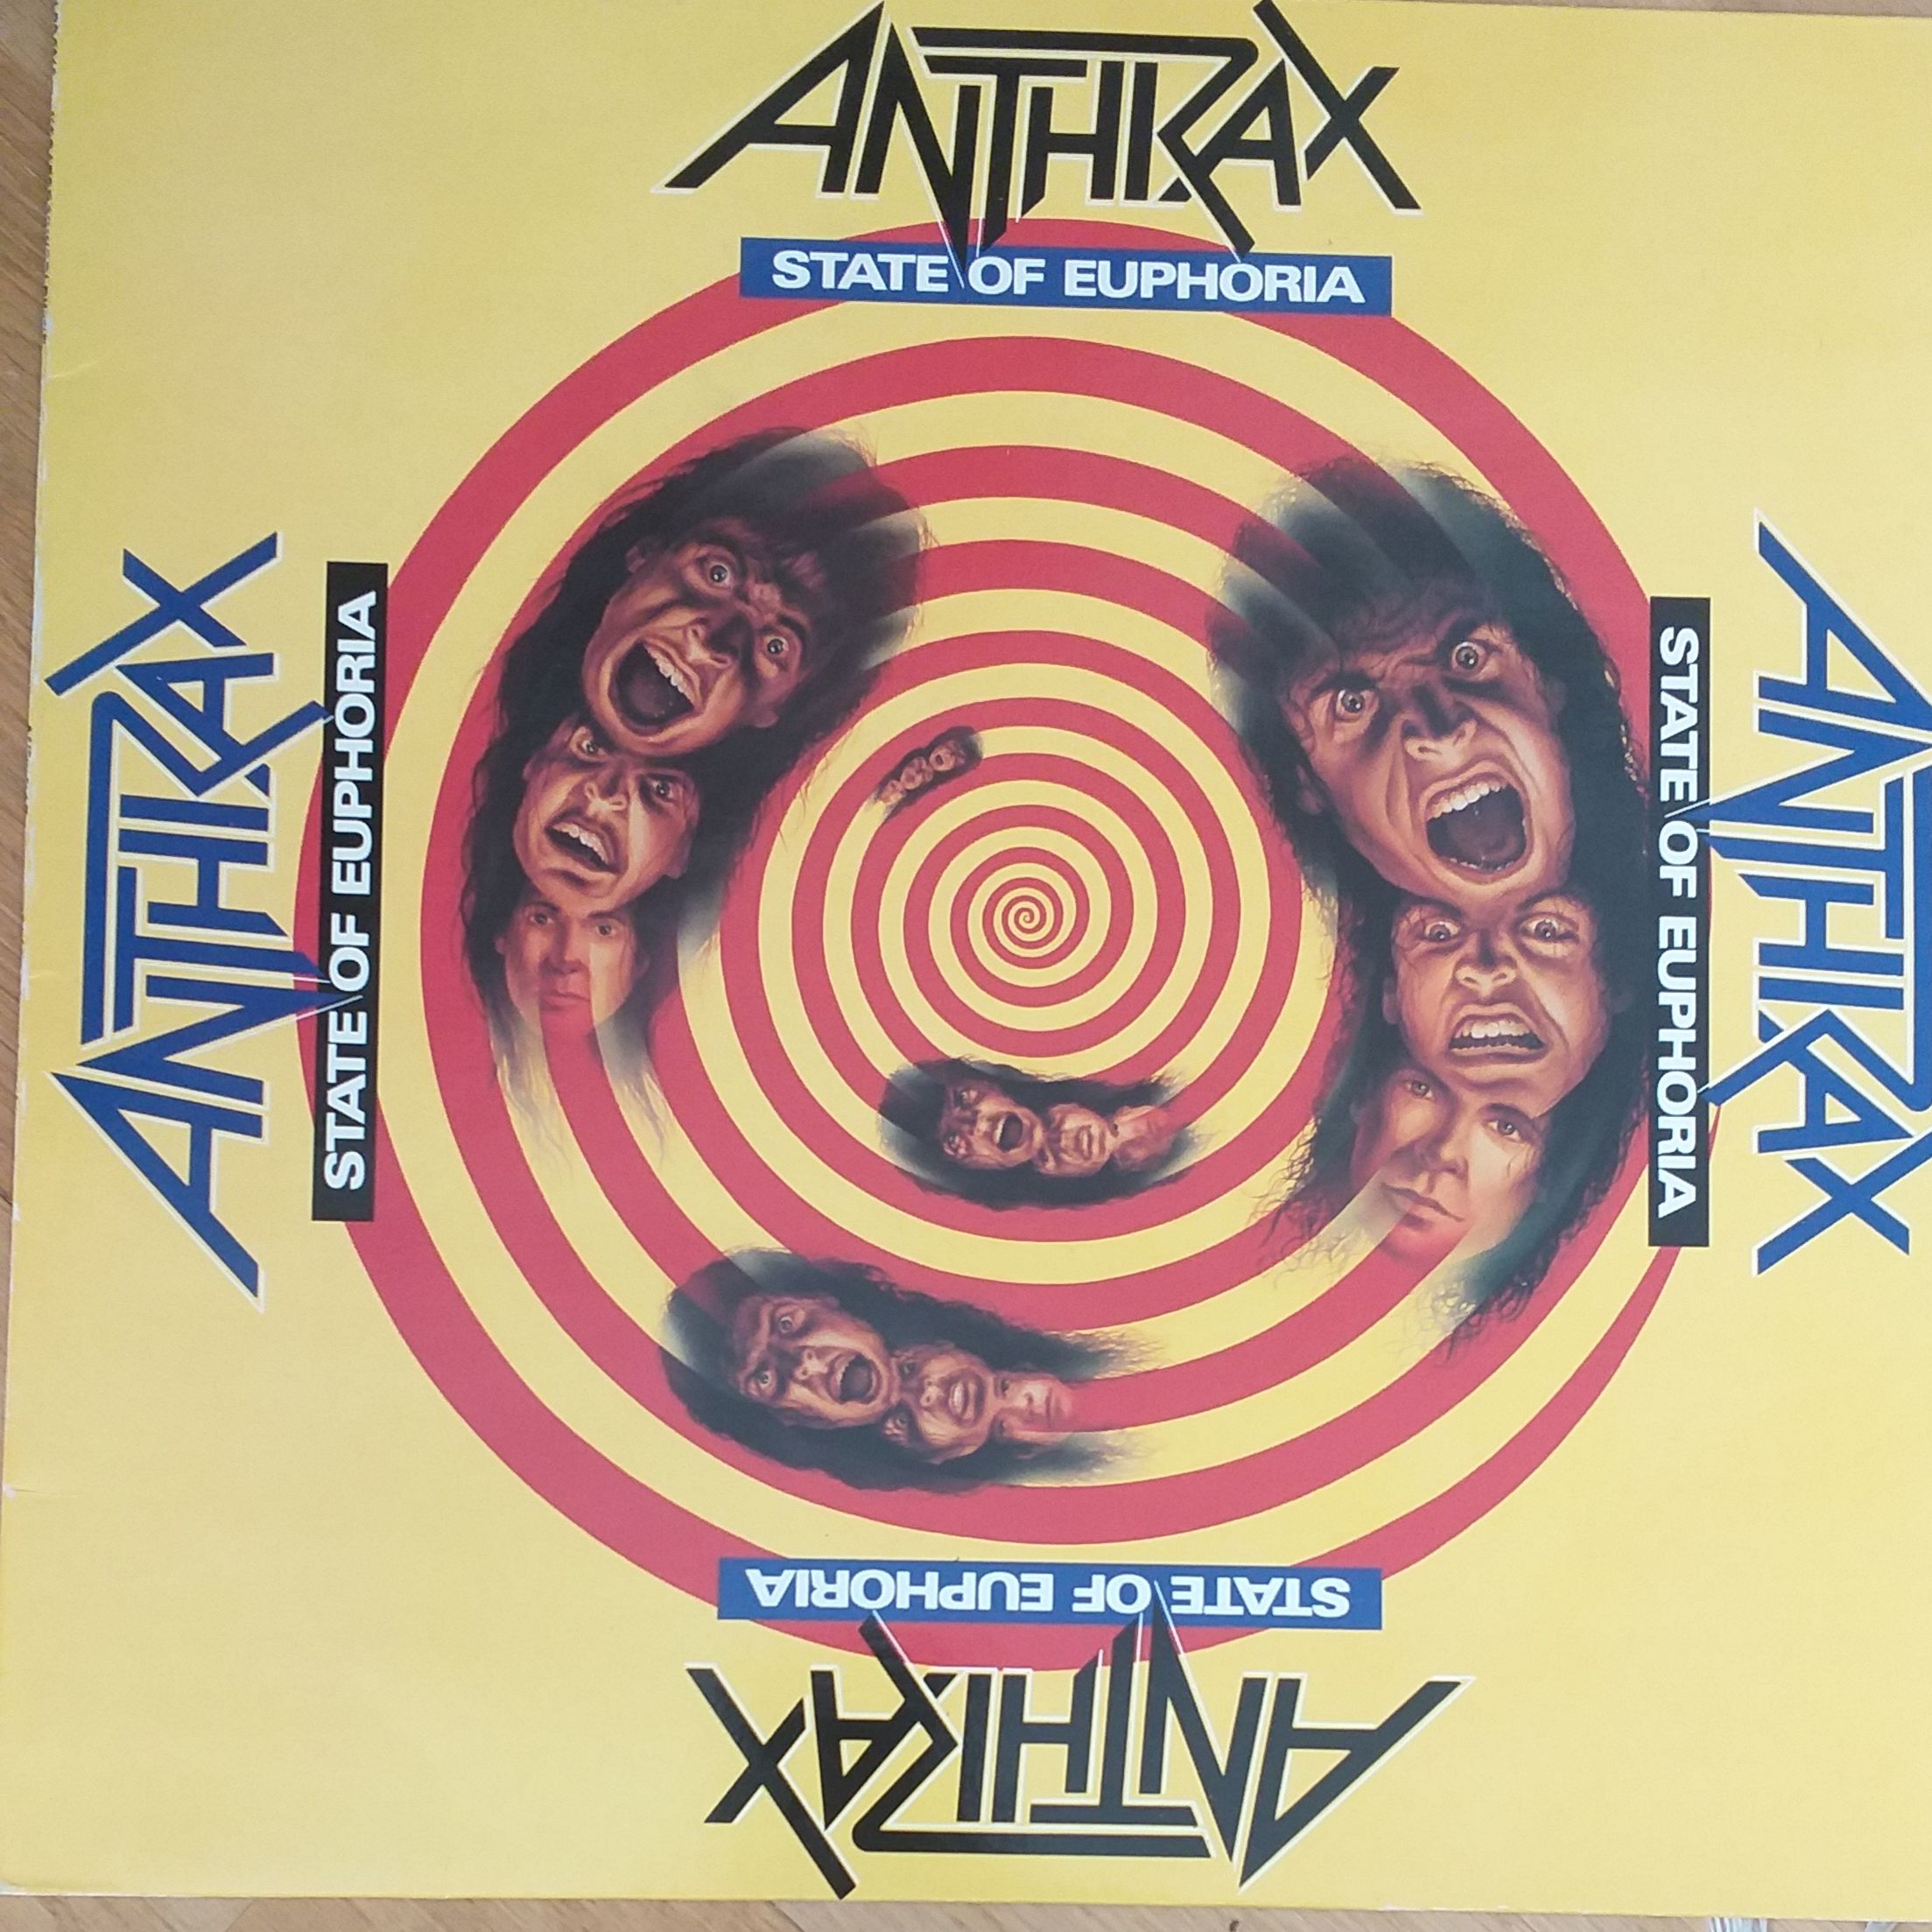 Anthrax State of euphoria LP undefined